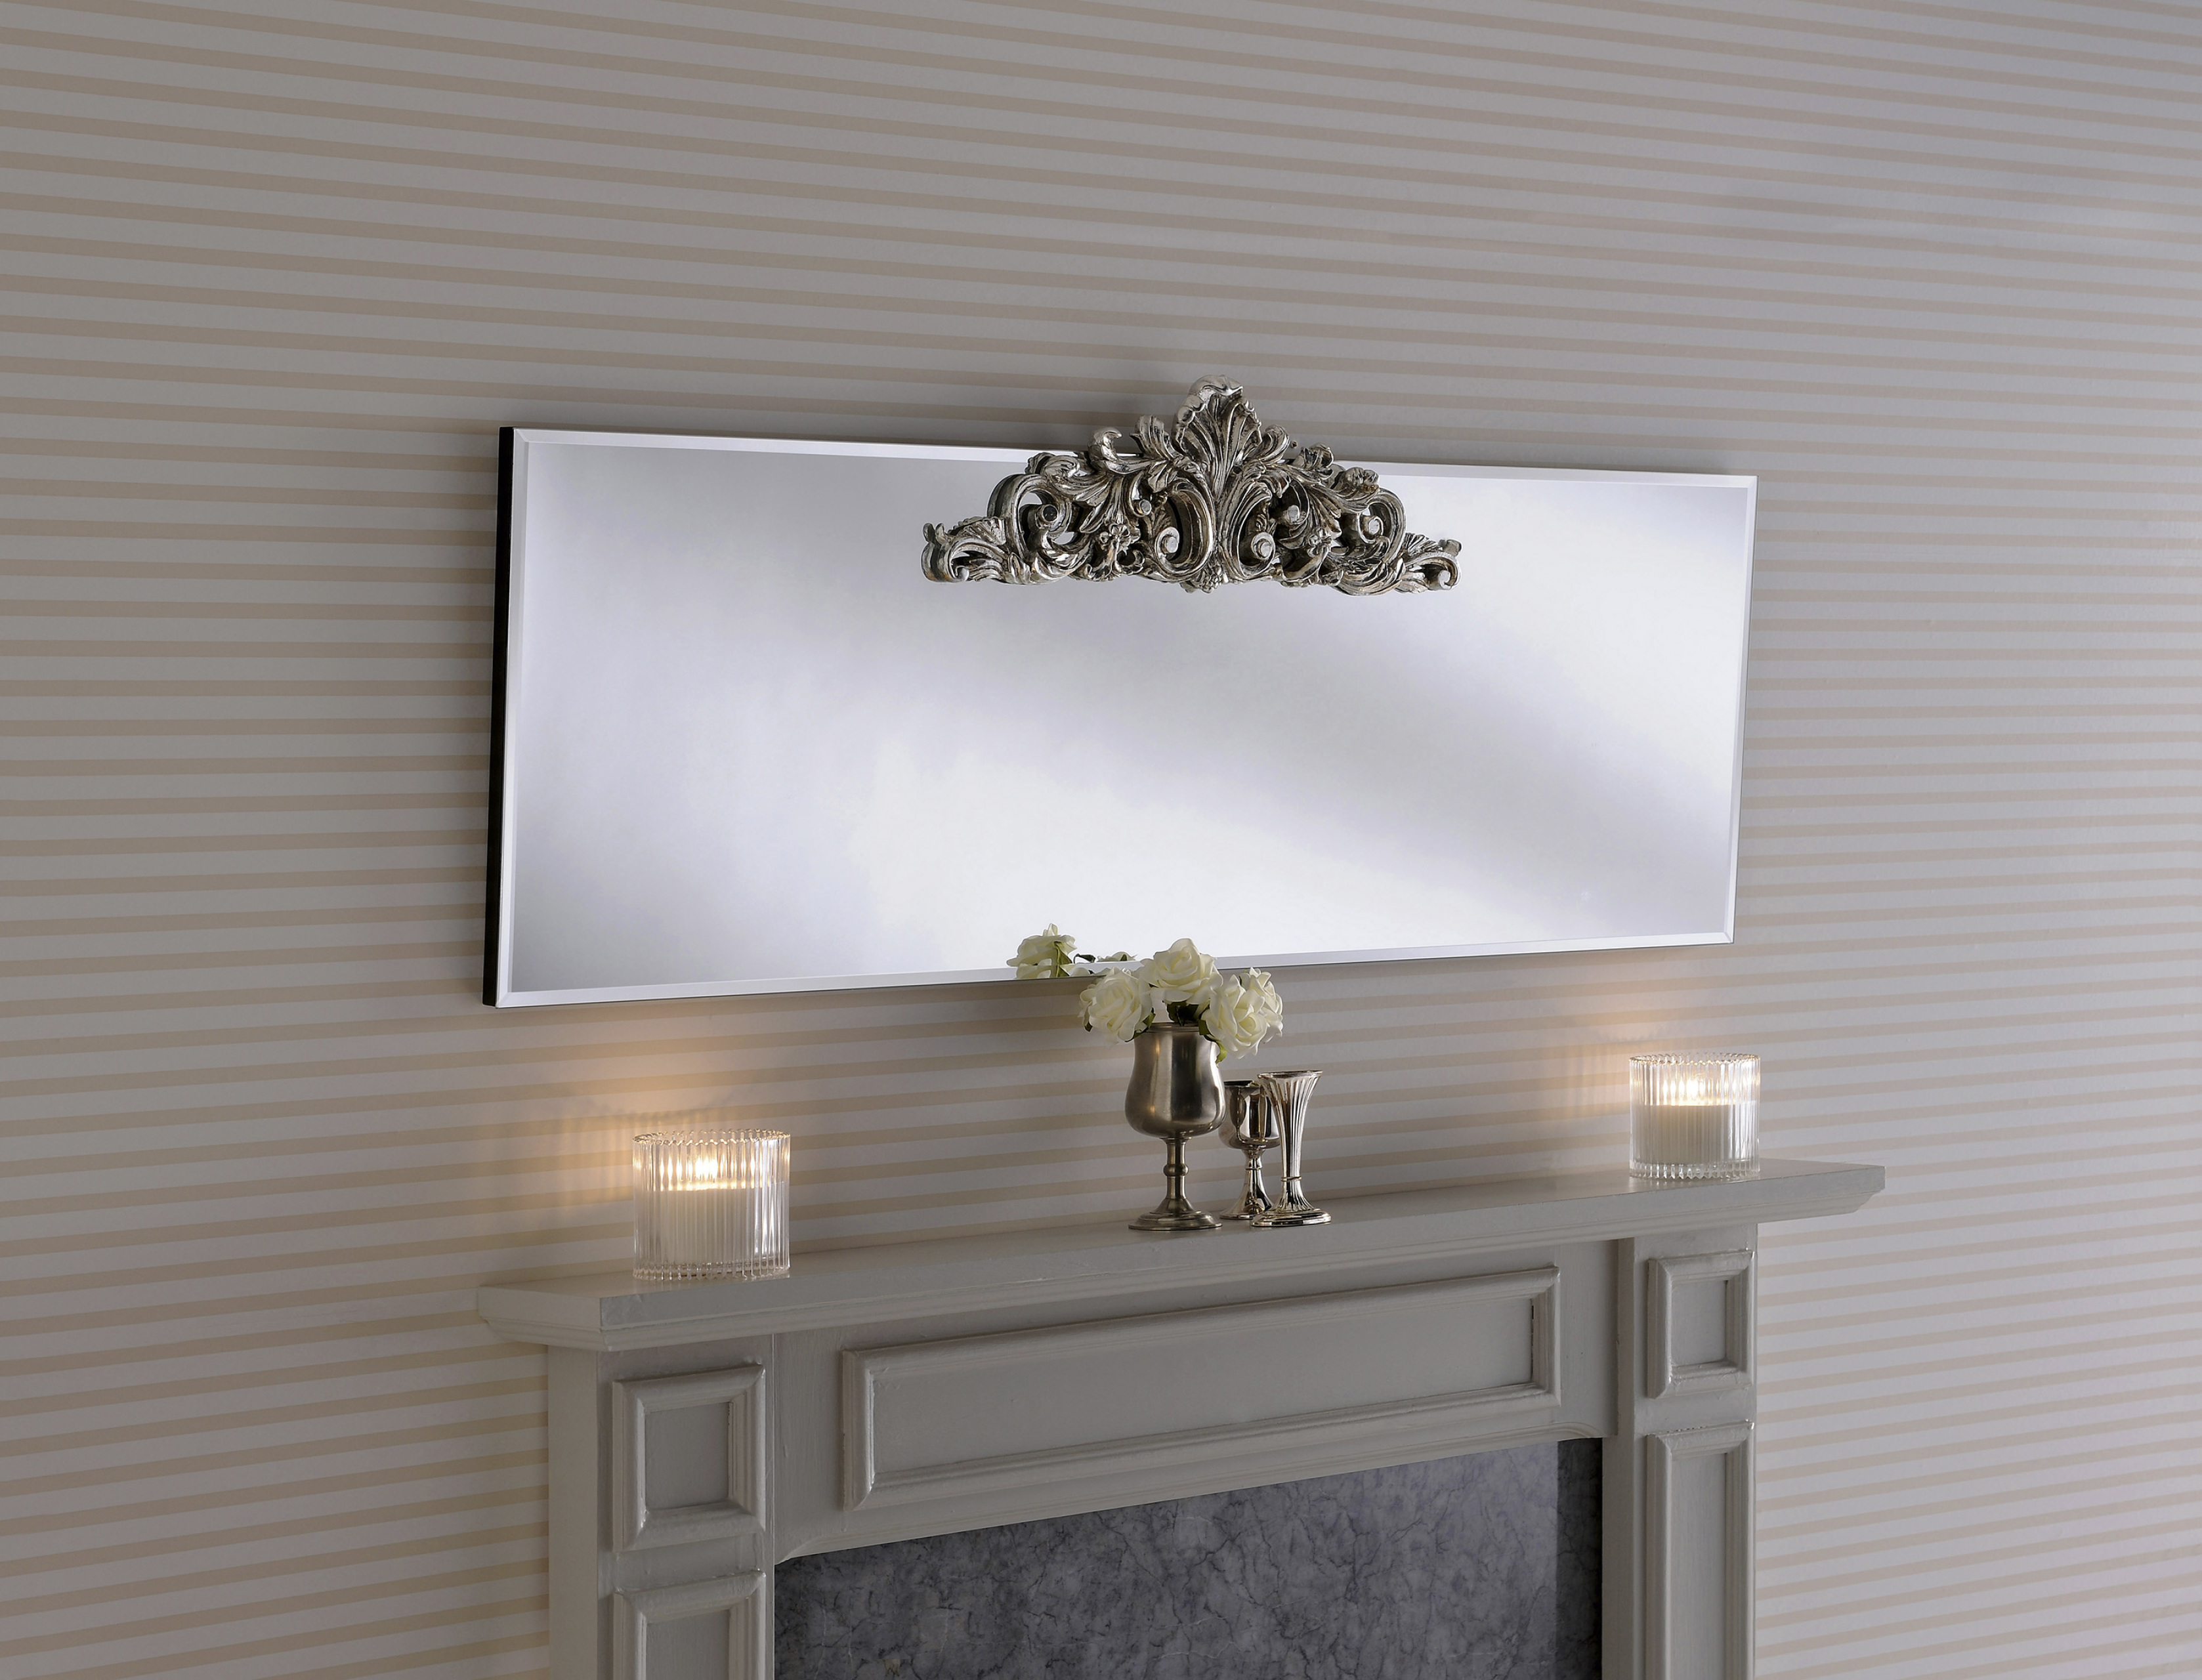 Lombardy Overmantle Mirror With Carved Decorative Feature